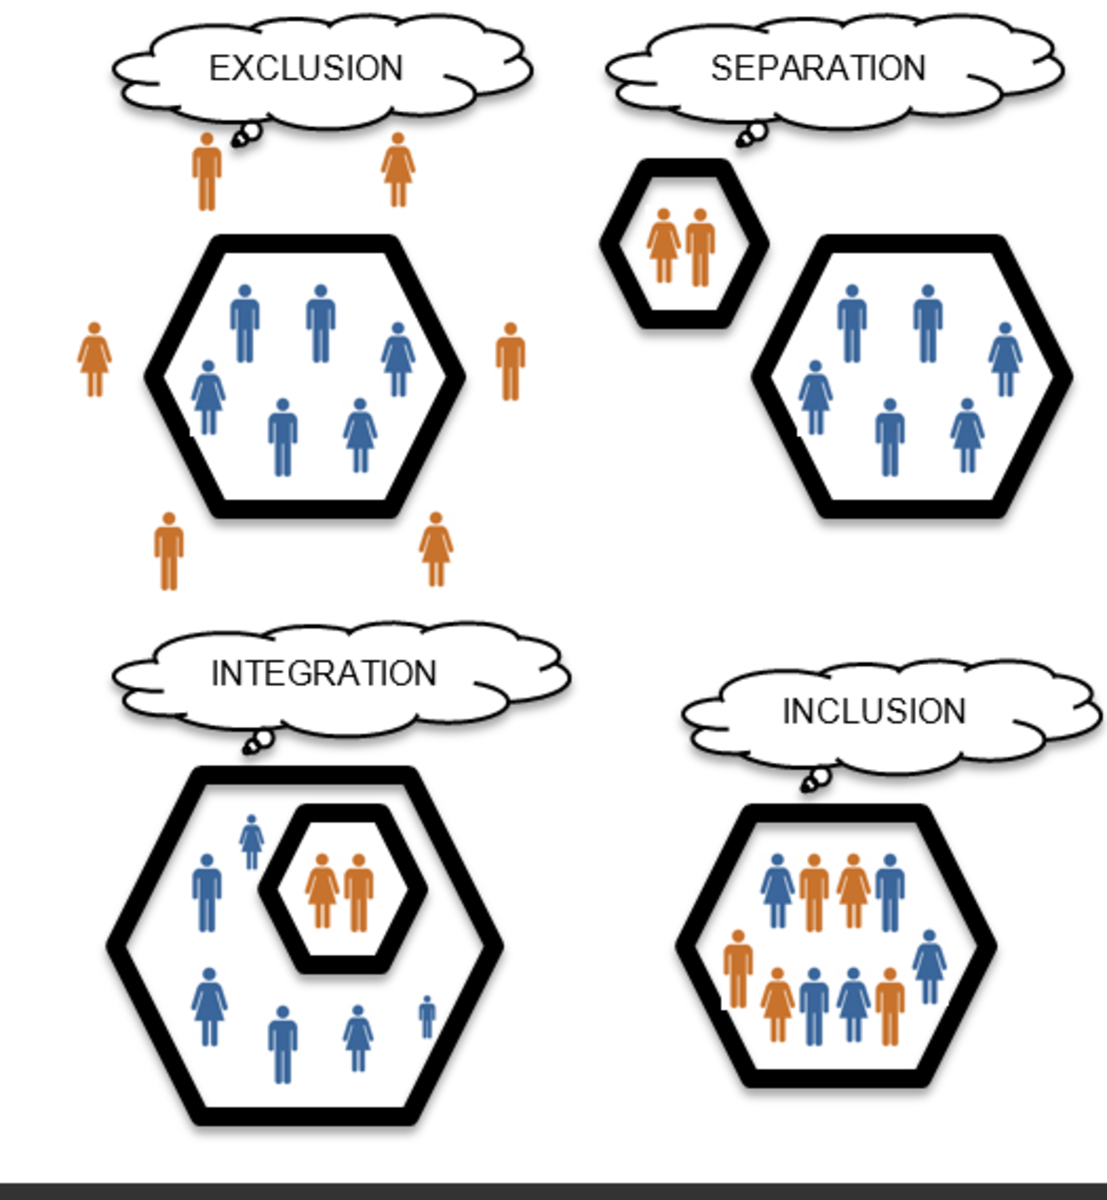 This diagram accurately depicts the difference between integration and inclusion.